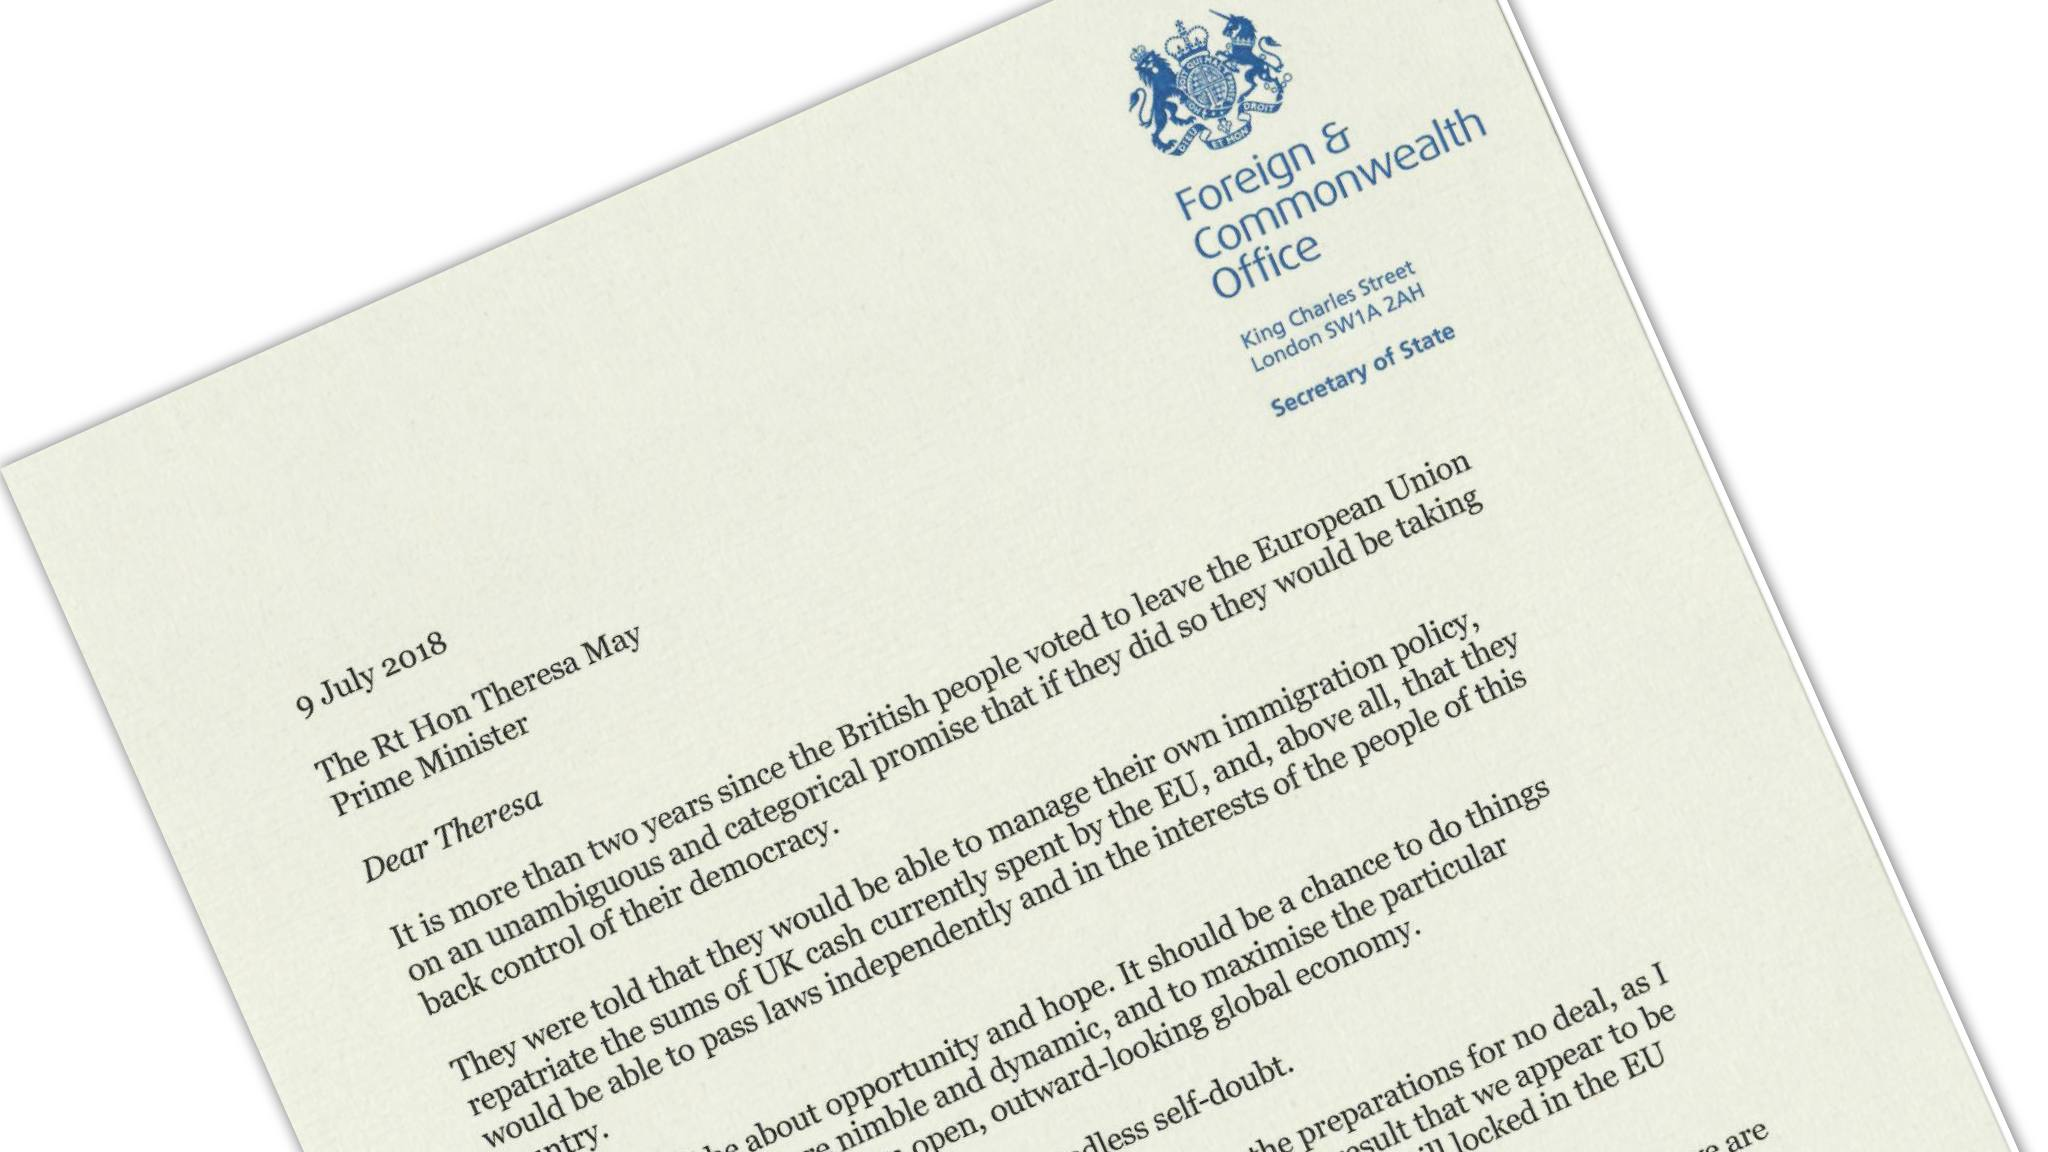 Boris Johnson\'s resignation letter, annotated